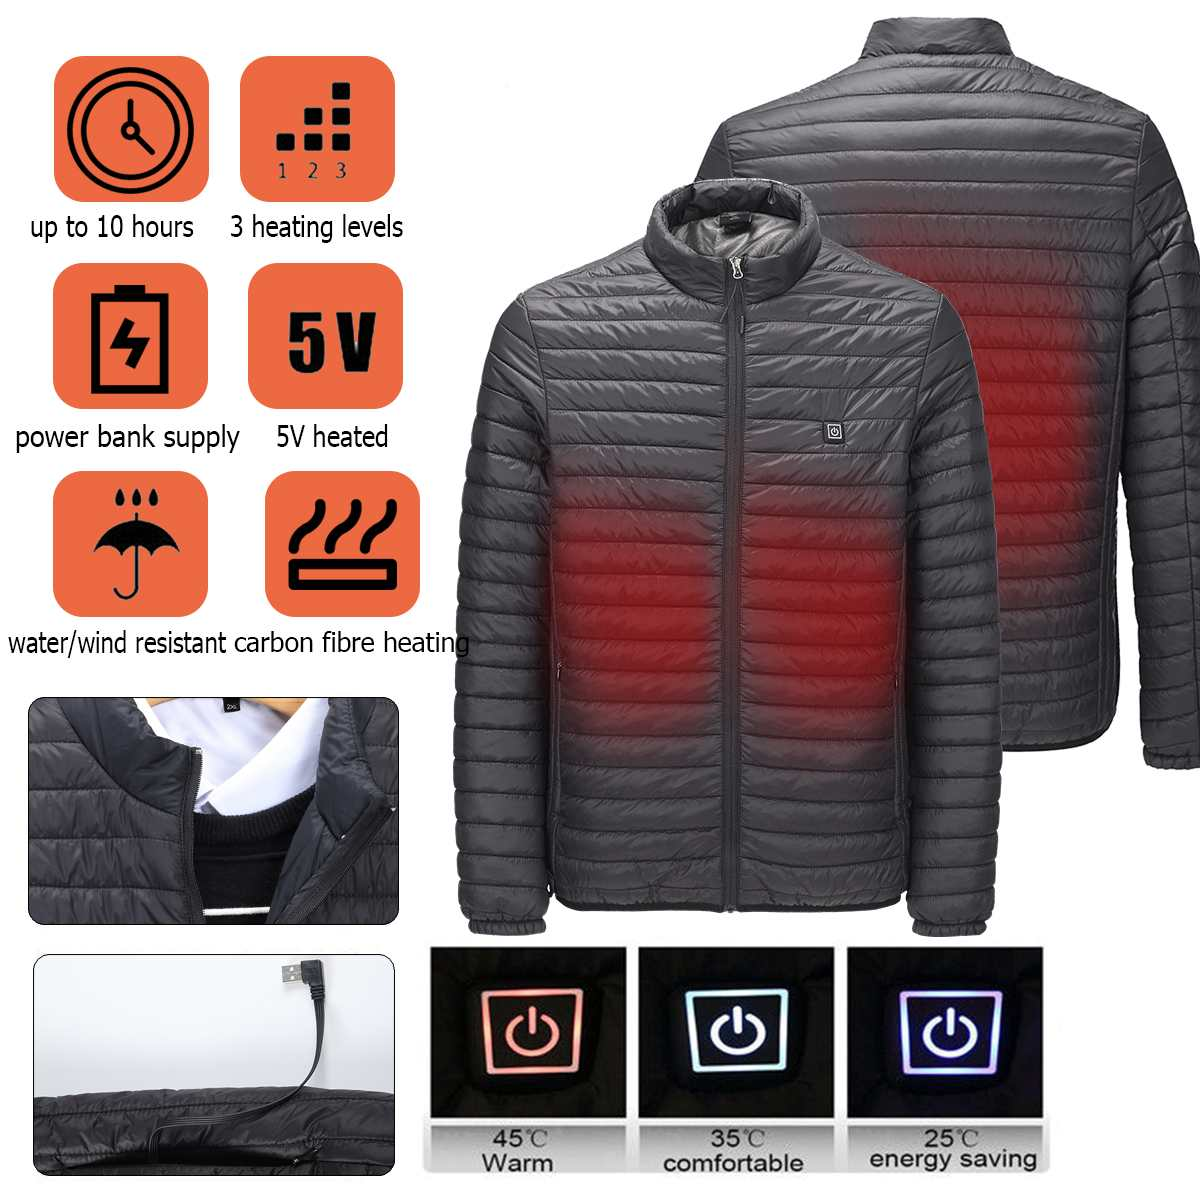 Men USB Fast Heated Jacket Winter Electric Waterproof Temperature Controllable Tactical Jacket For Hiking Camping Trekking Climb Hiking Jackets     - title=